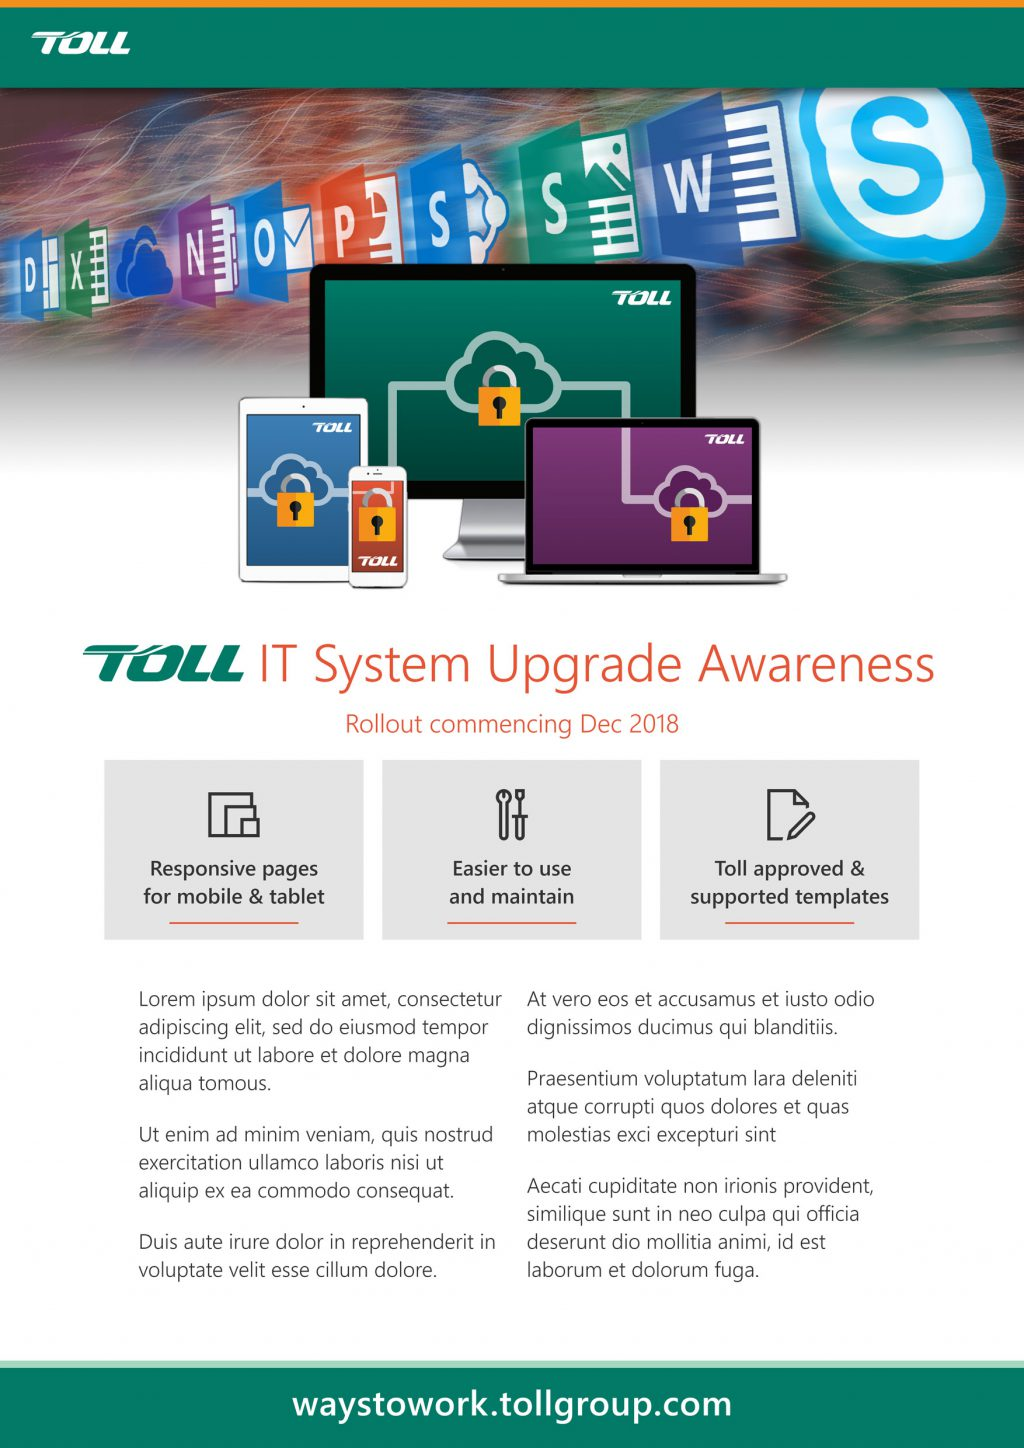 Toll A3 Poster - Devices